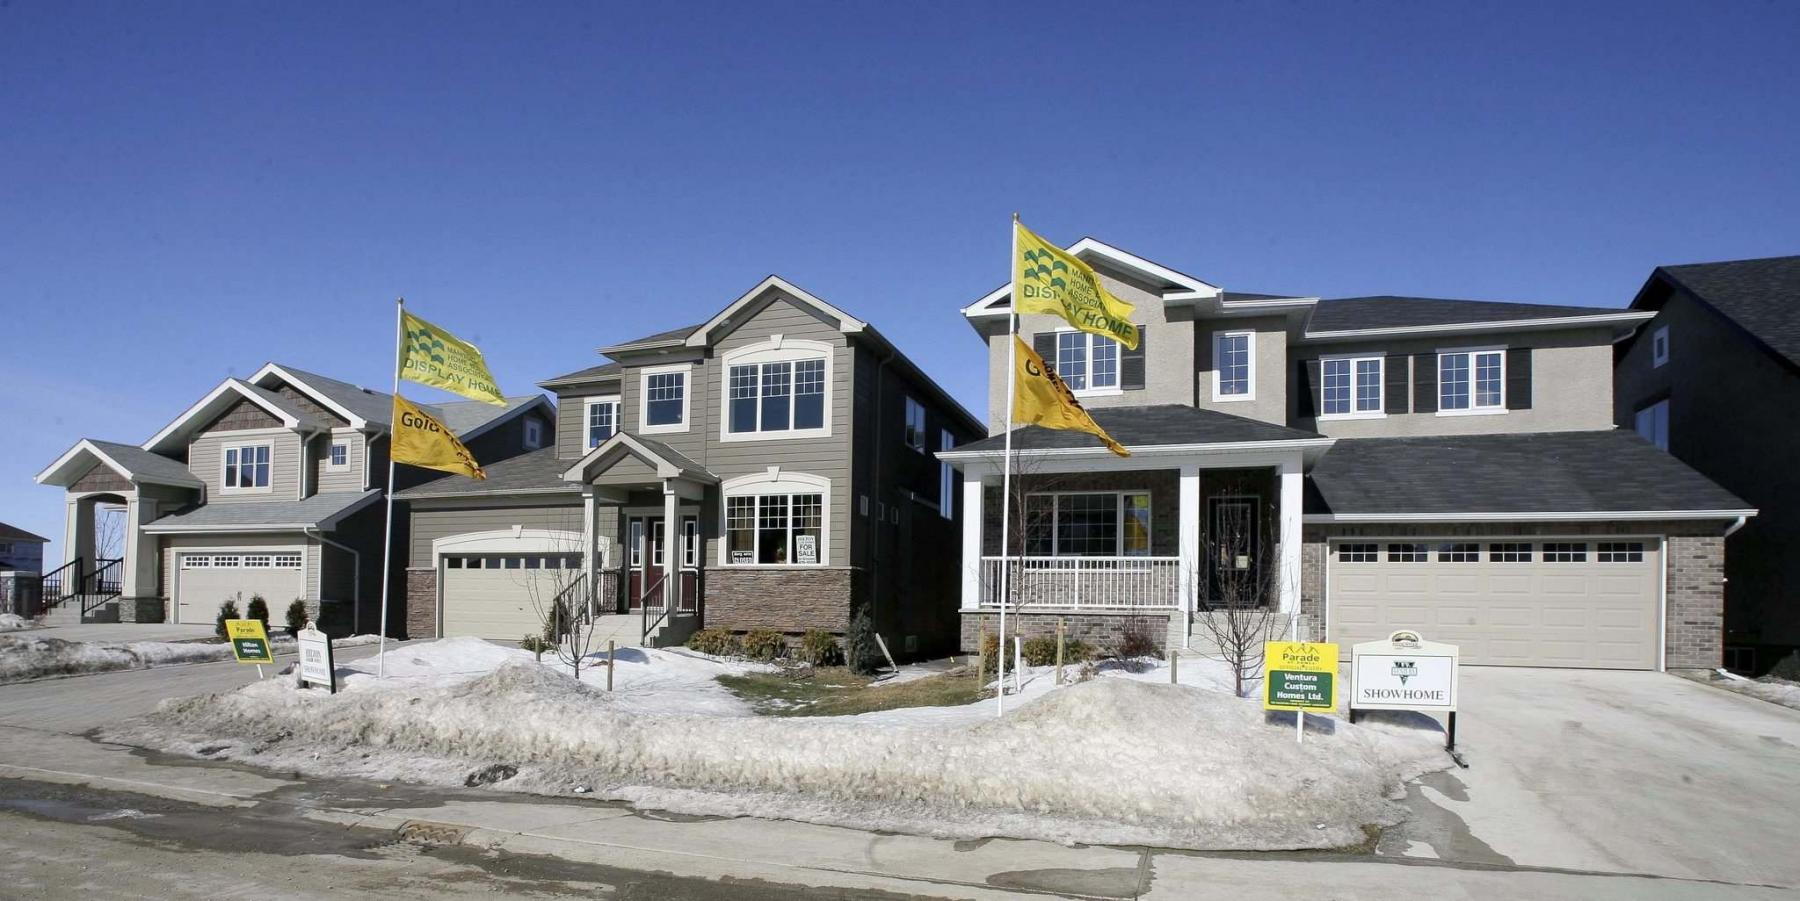 <p>MIKE DEAL / WINNIPEG FREE PRESS FILES</p><p>The Manitoba Home Builders' Association's Parade of Homes is the largest such showcase of new homes in Canada.</p>